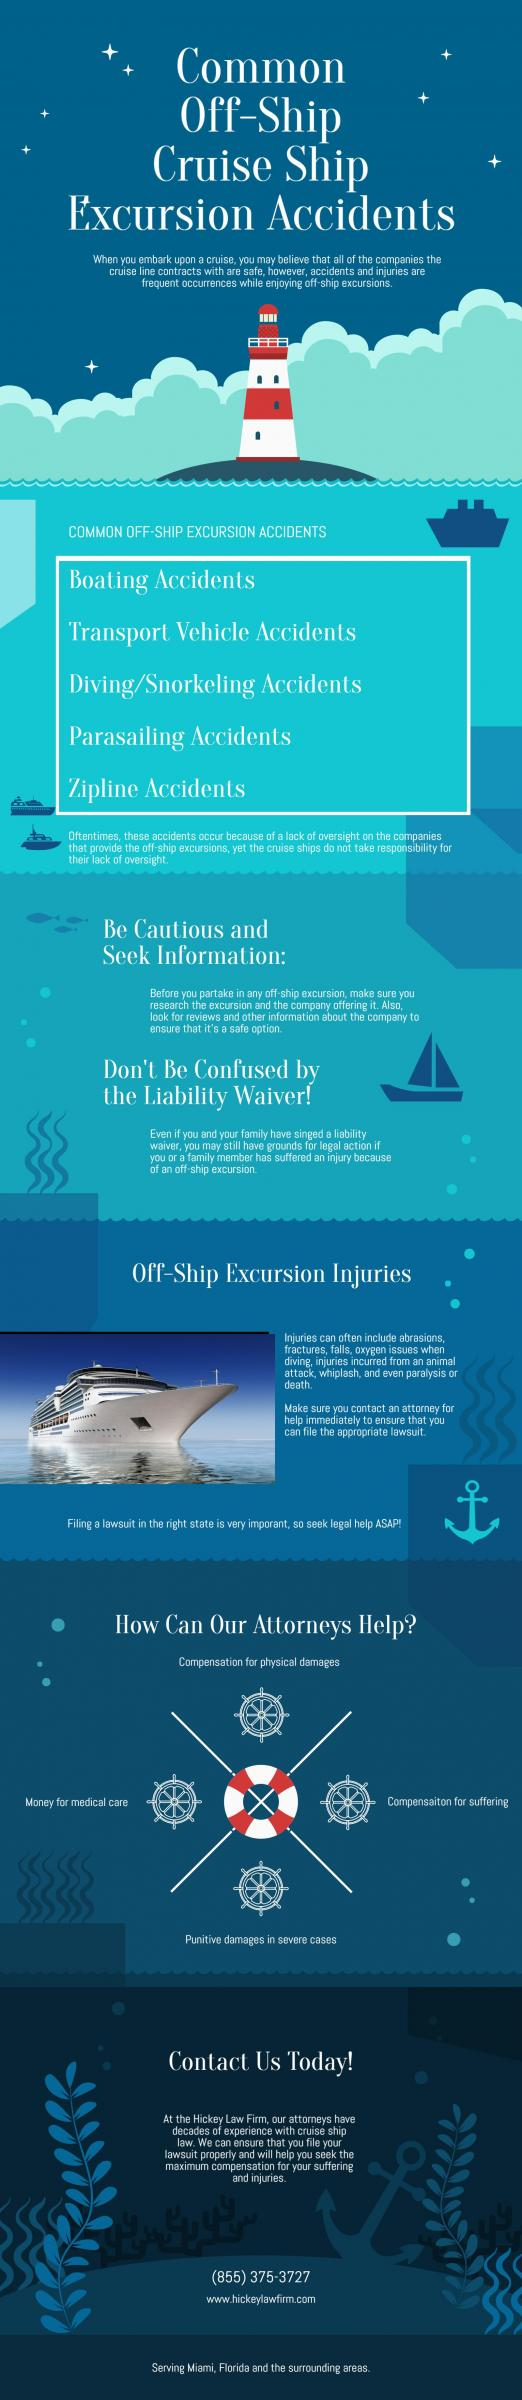 Infographic: Common Off-Ship Cruise Ship Excursion Accidents | Hickey Law Firm, P.A.